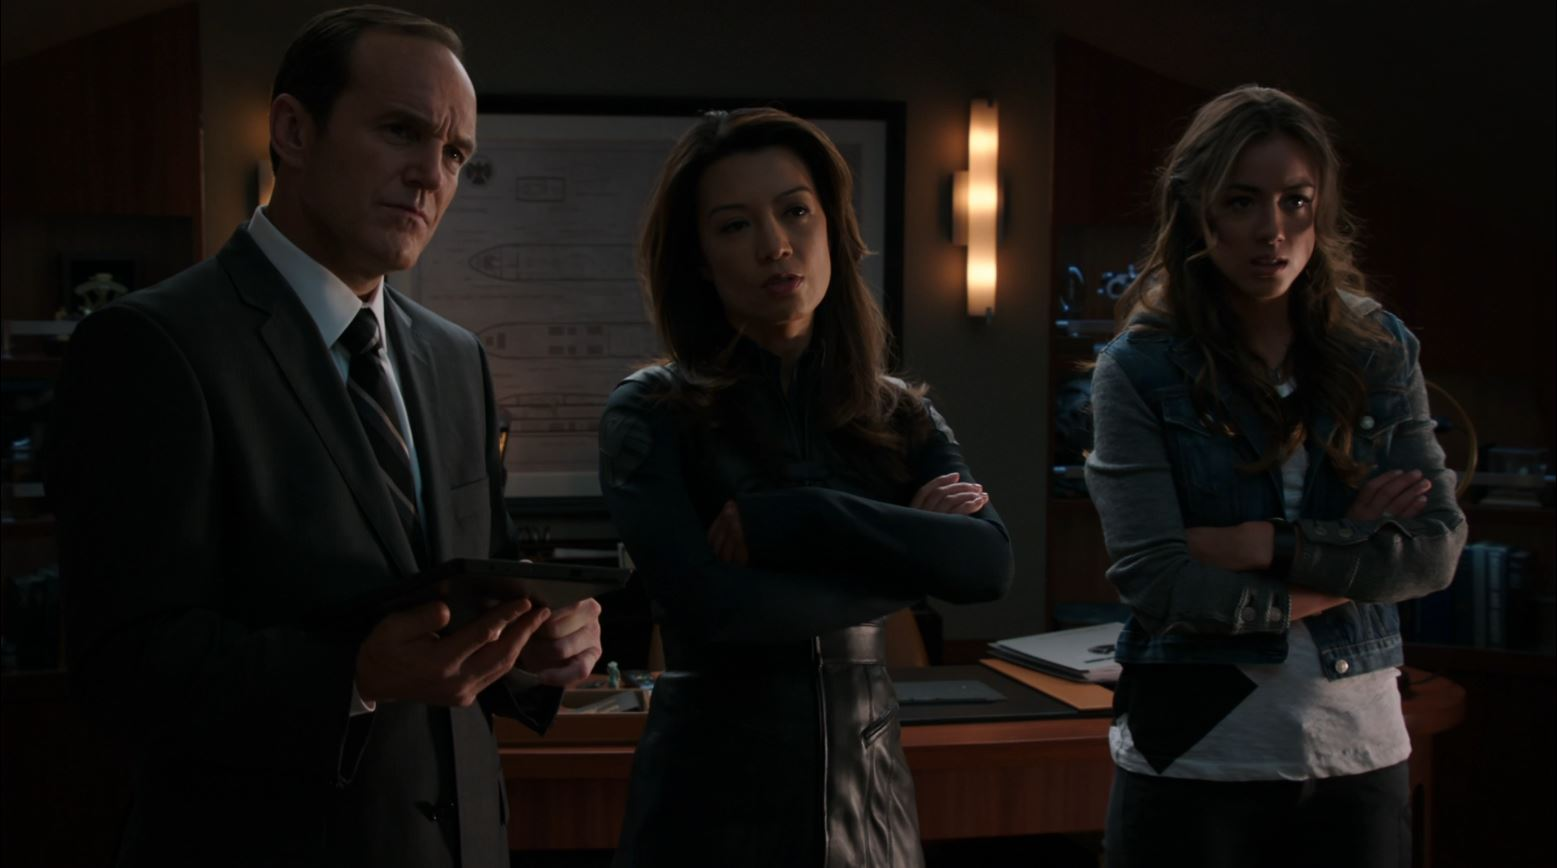 Agents of SHIELD - Eye Spy - Clark Gregg as Coulson, Ming-Na Wen & Chloe Bennet as Skye